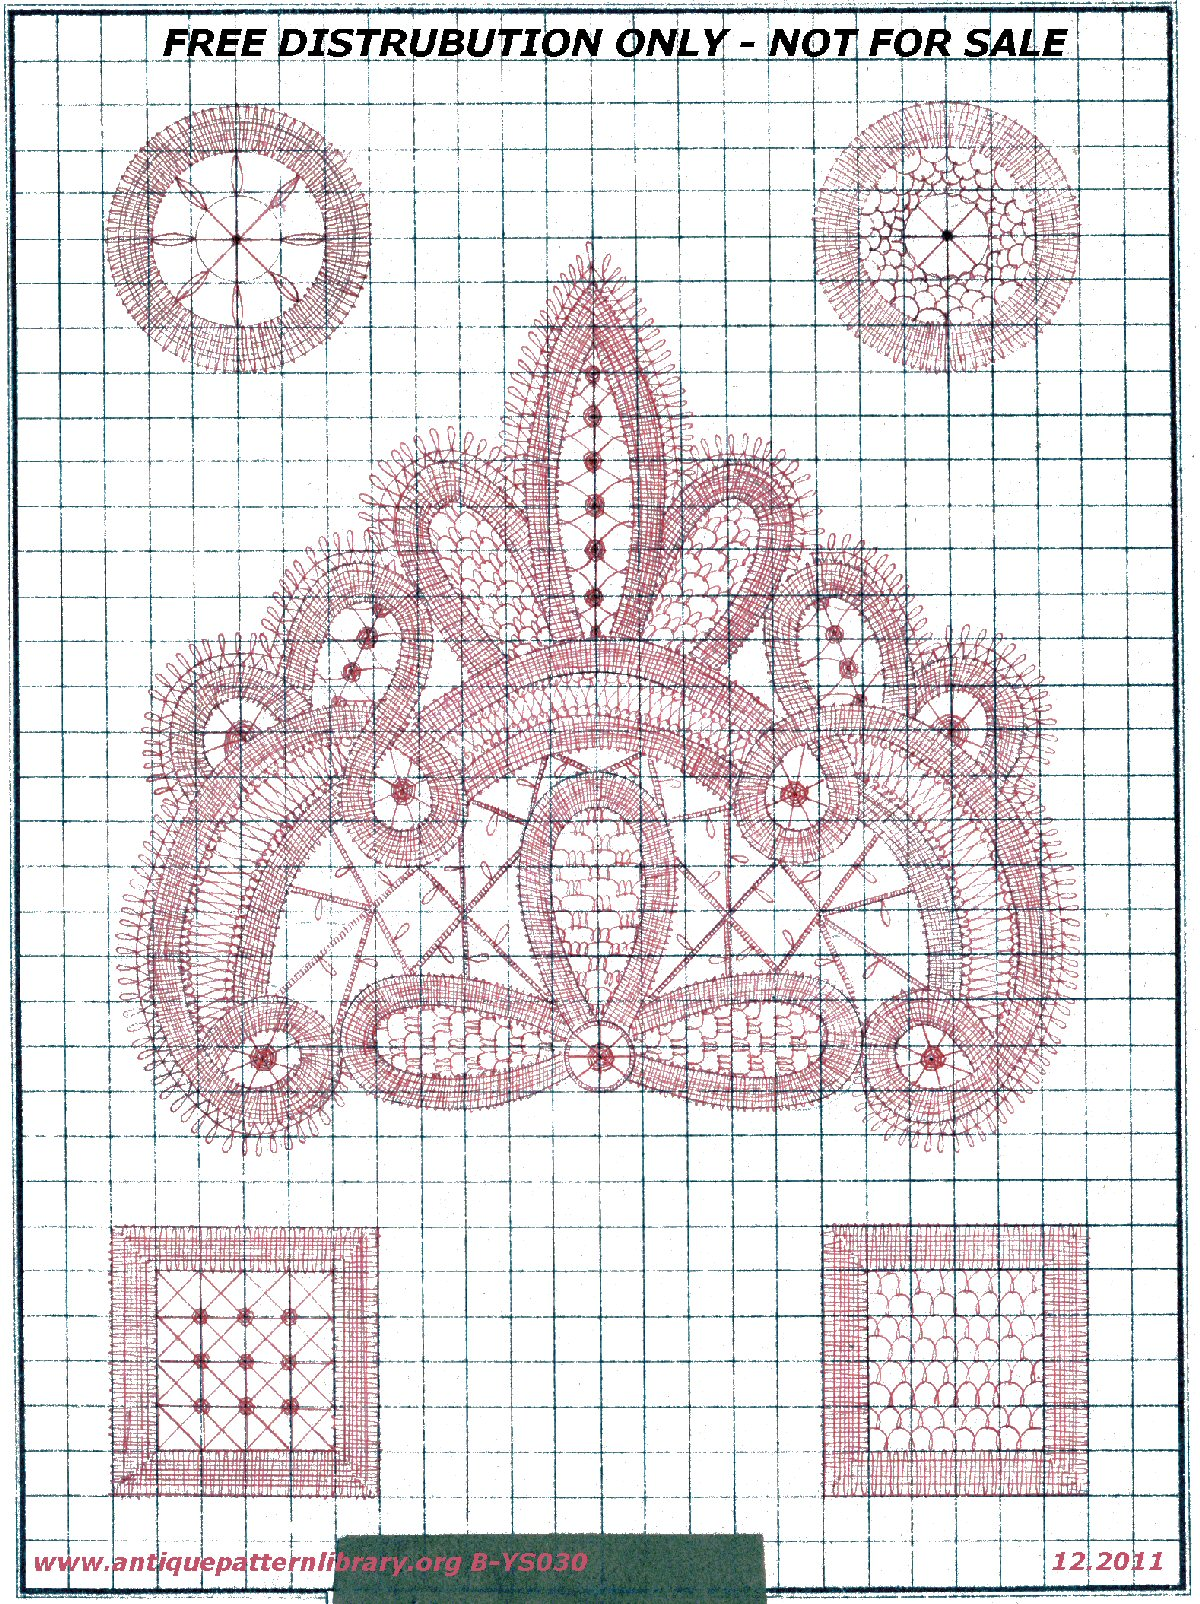 Handdrawn pattern sheet